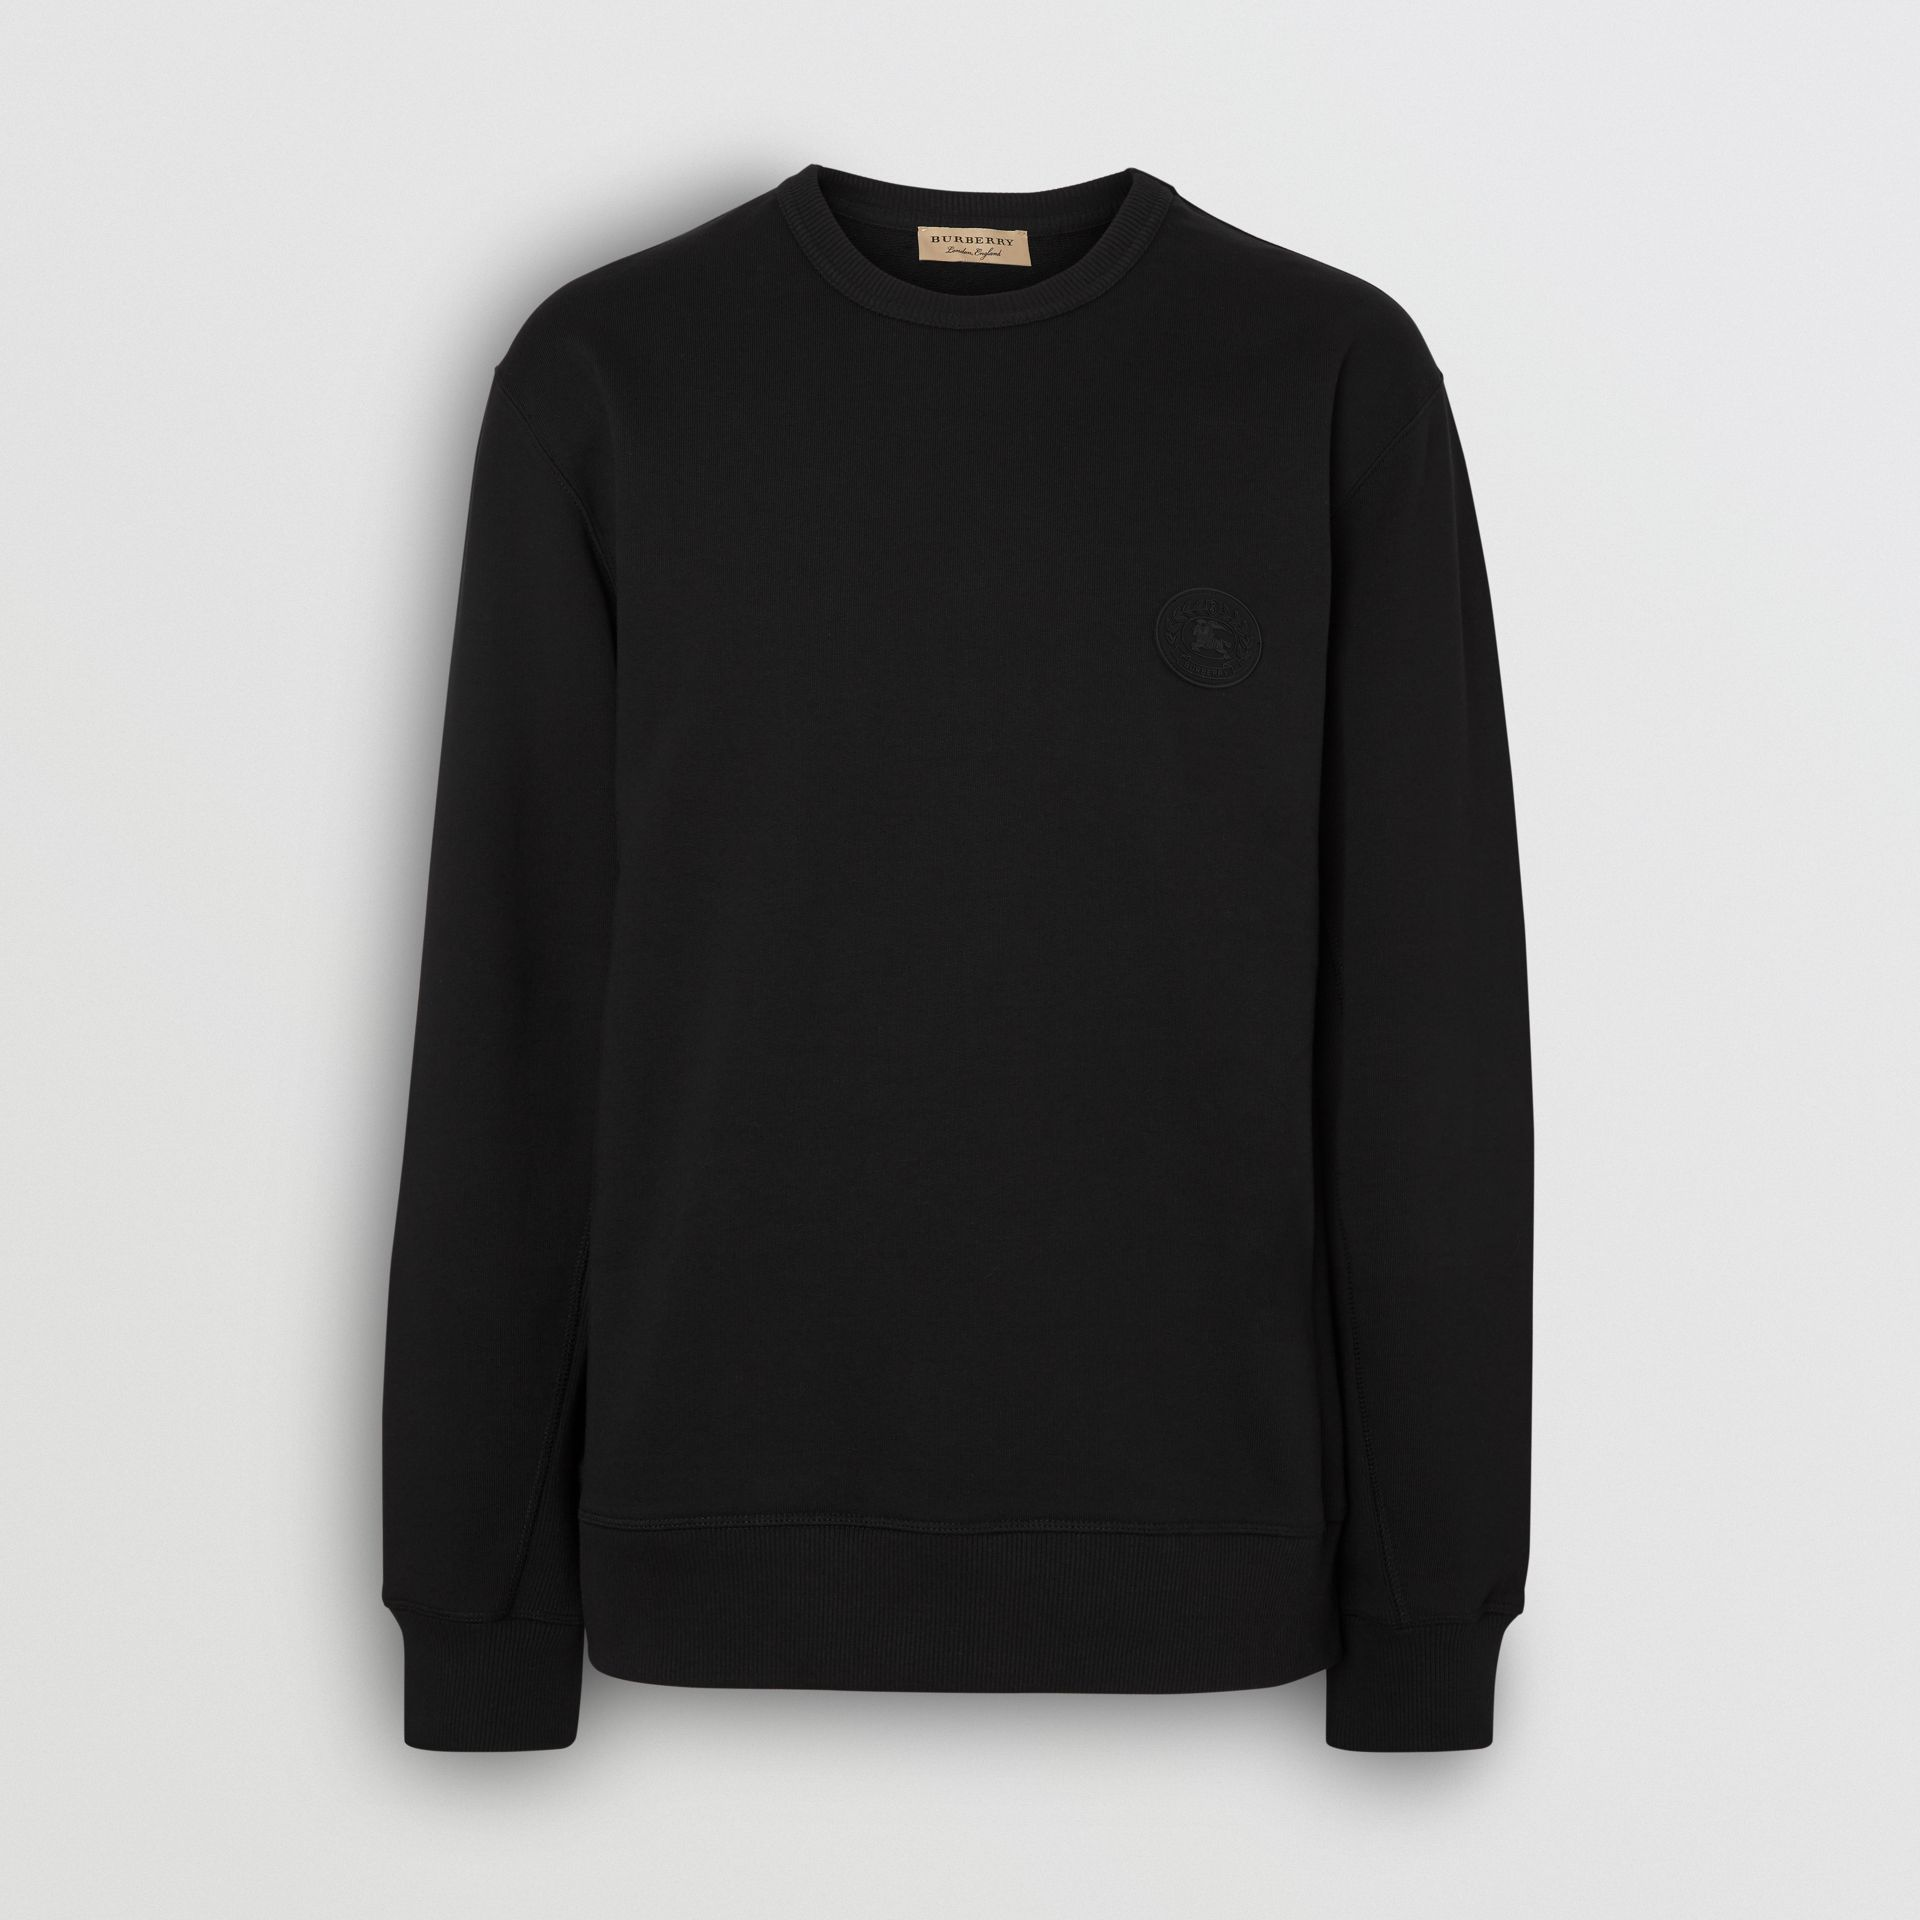 Embroidered Crest Cotton Sweatshirt in Black - Men | Burberry - gallery image 3